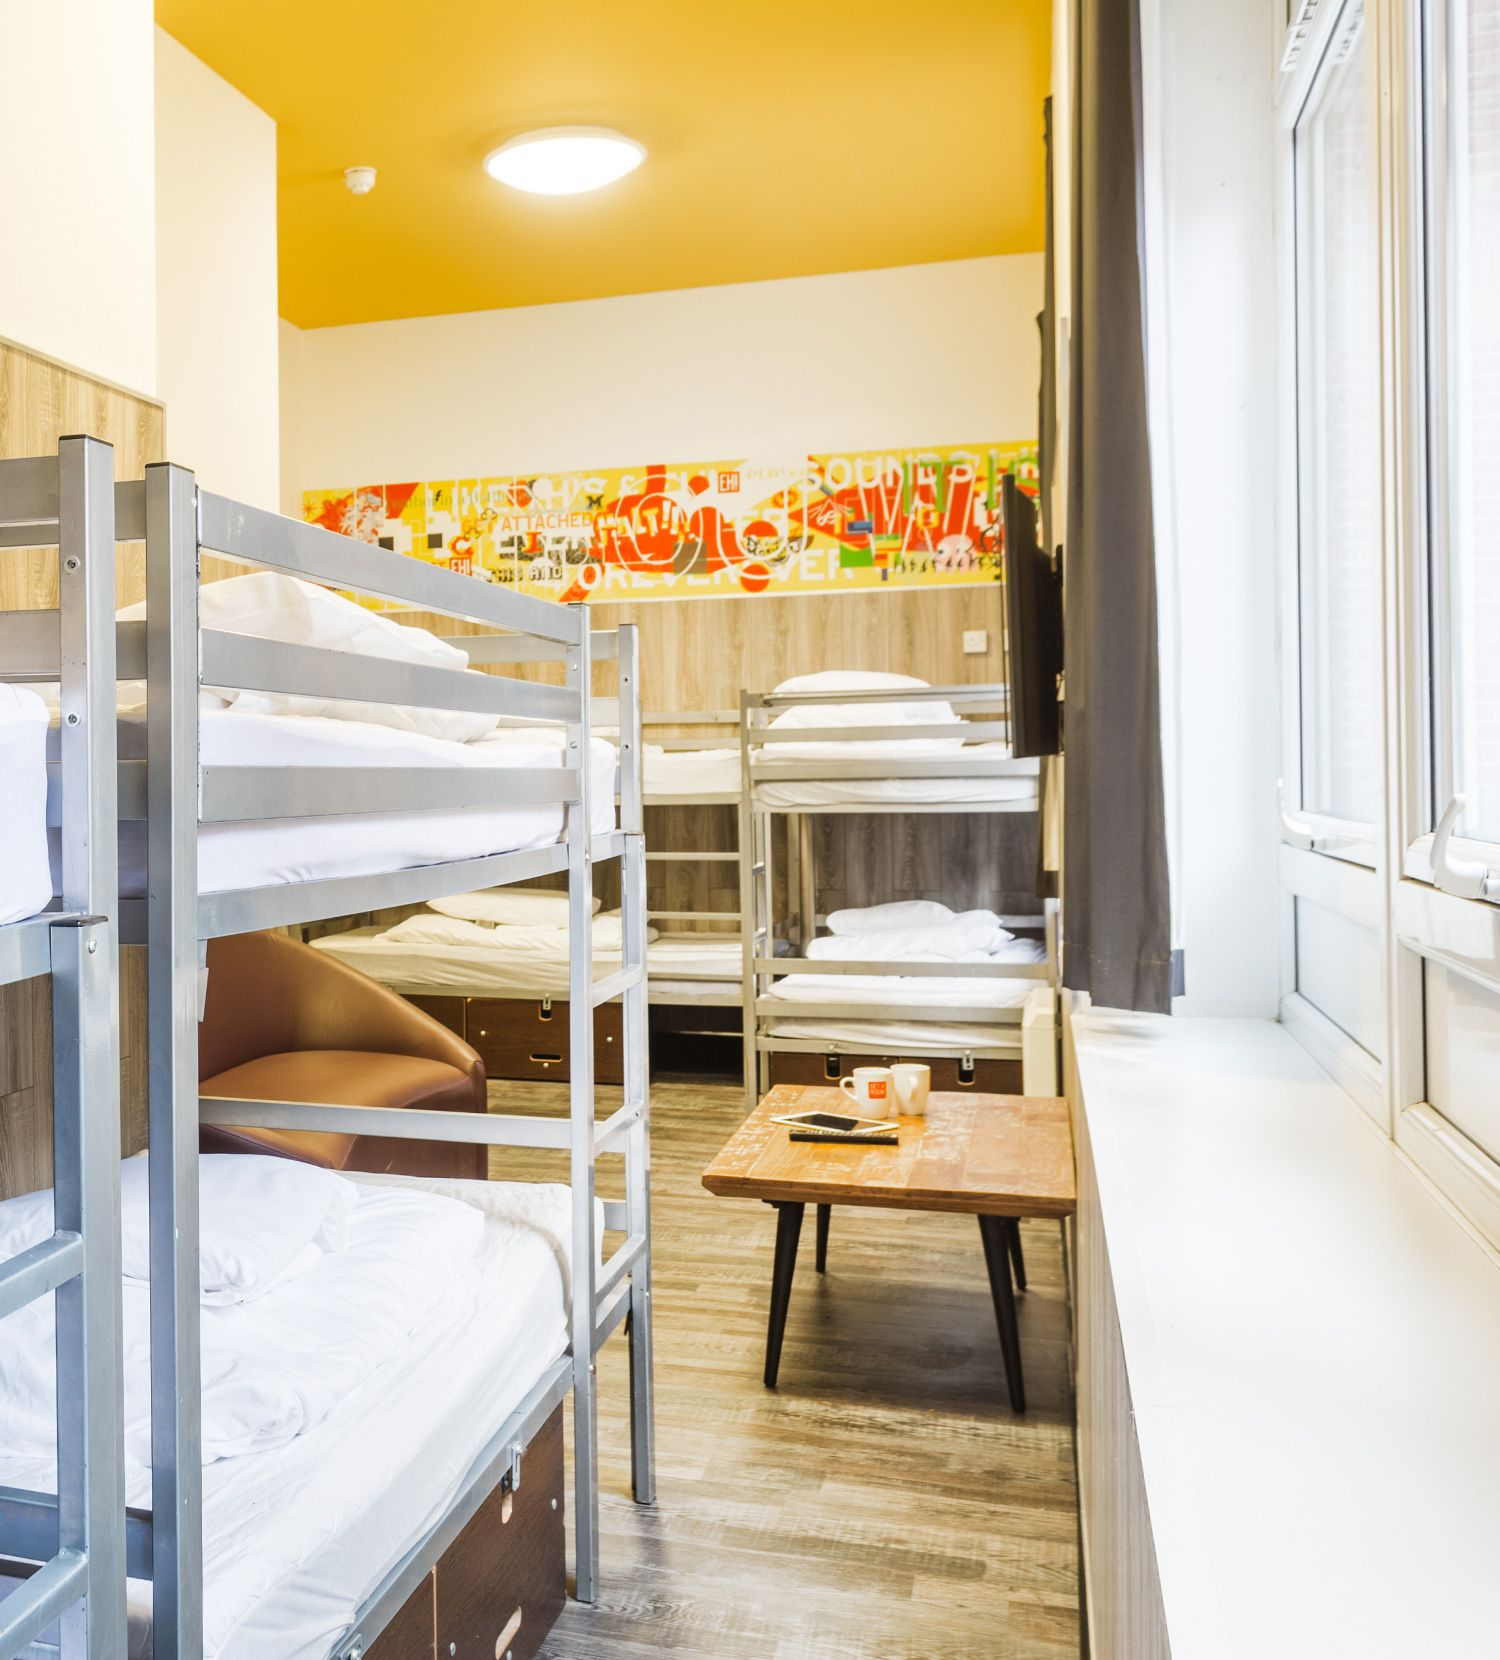 Beds at Euro Hostel Newcastle